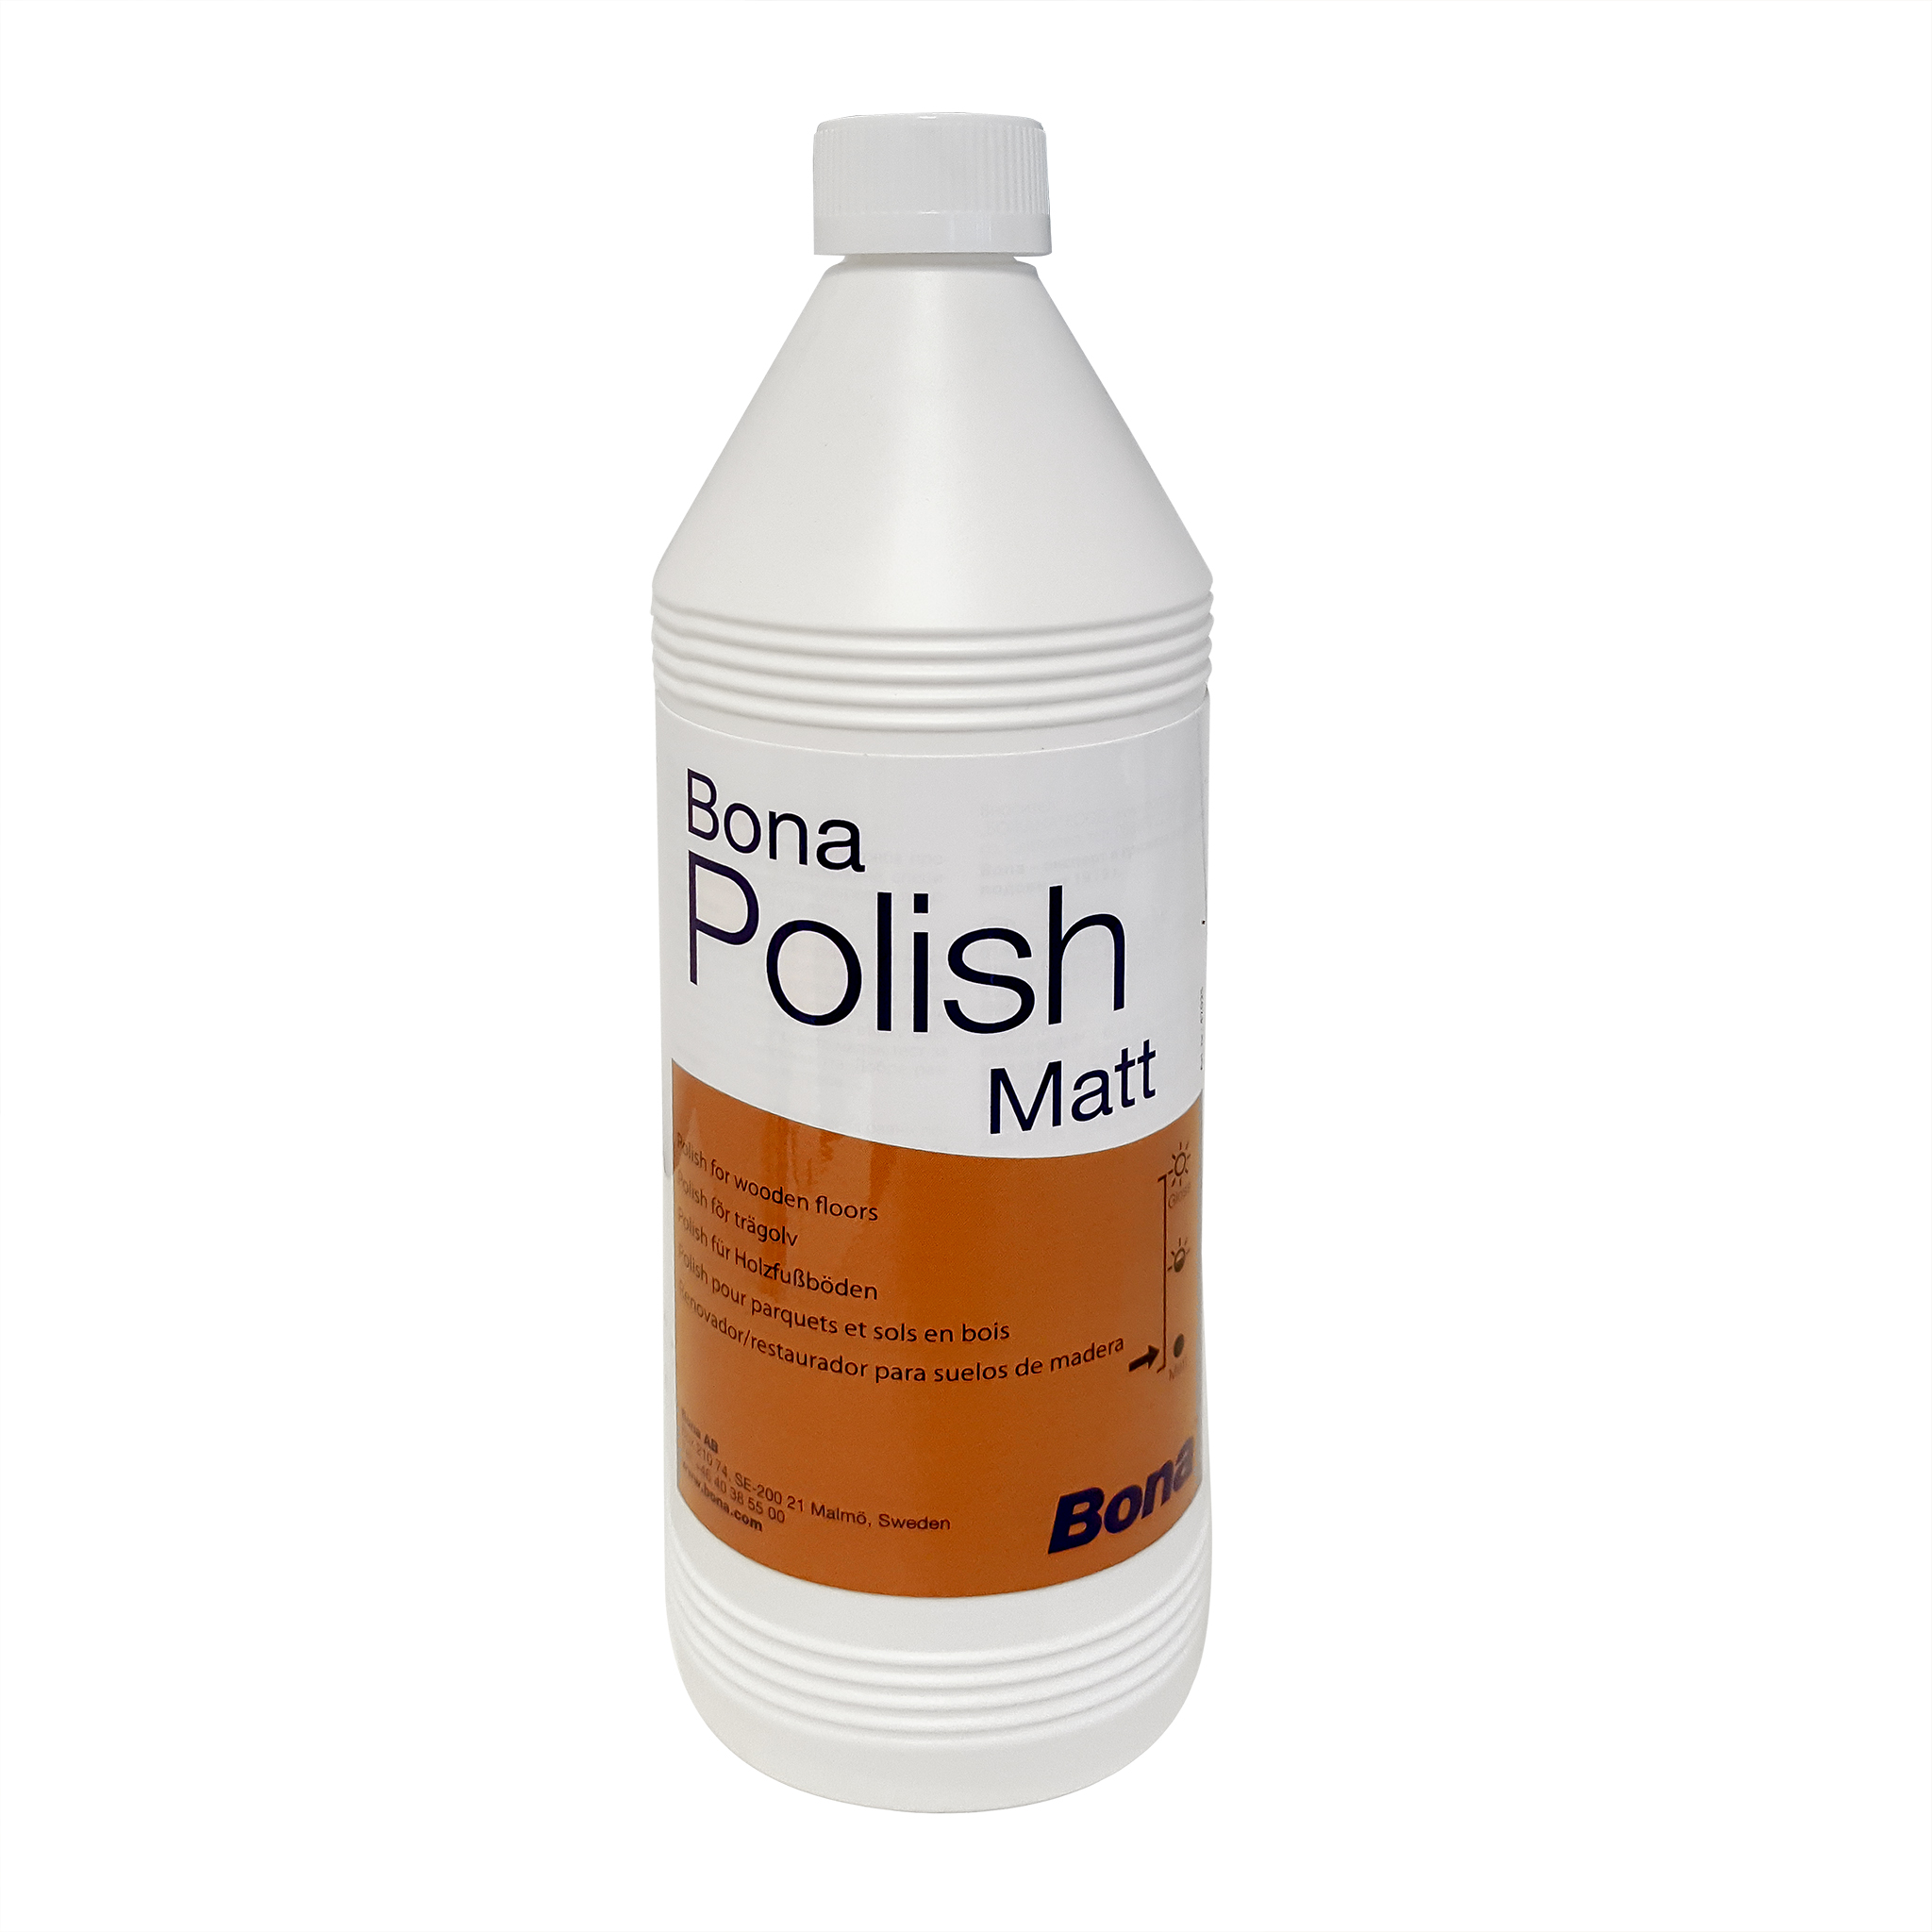 Bona Parkett Polish Pflegemittel 1 Liter